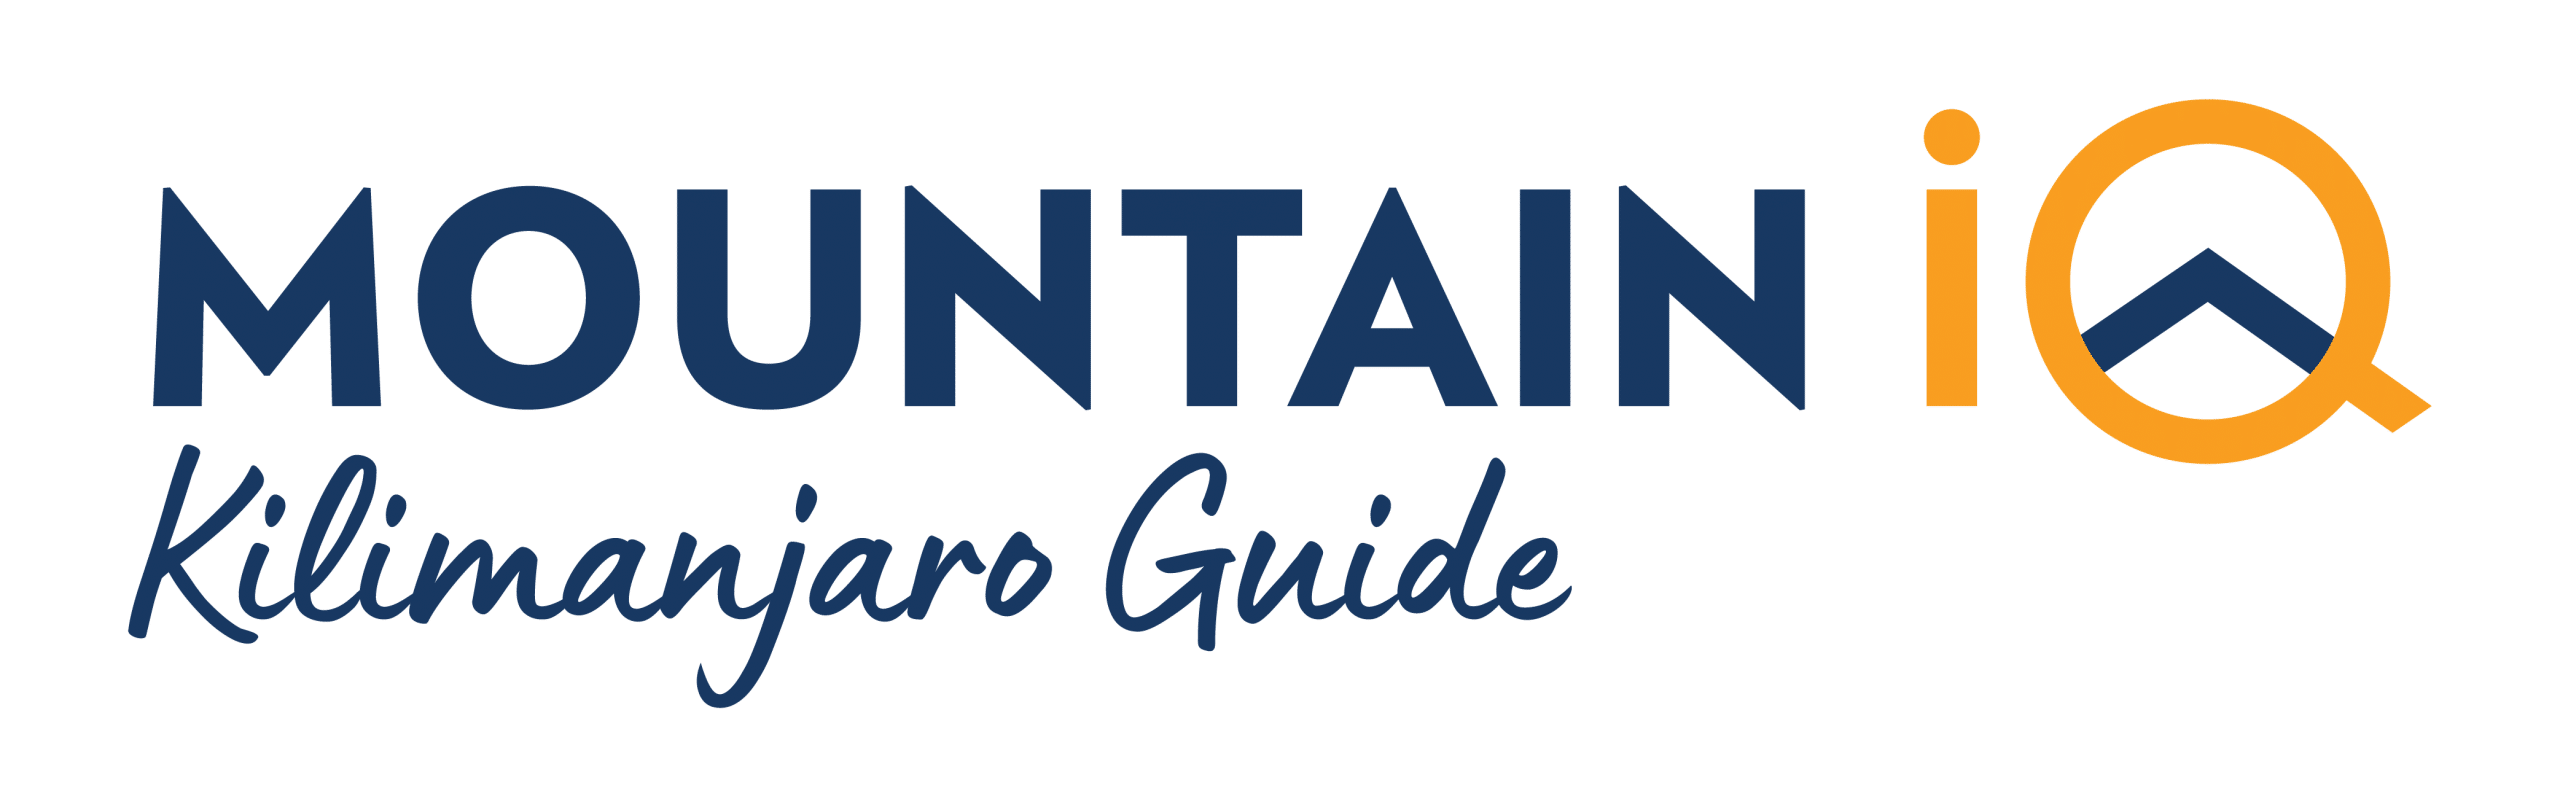 kilimanjaro guide mountain iq logo